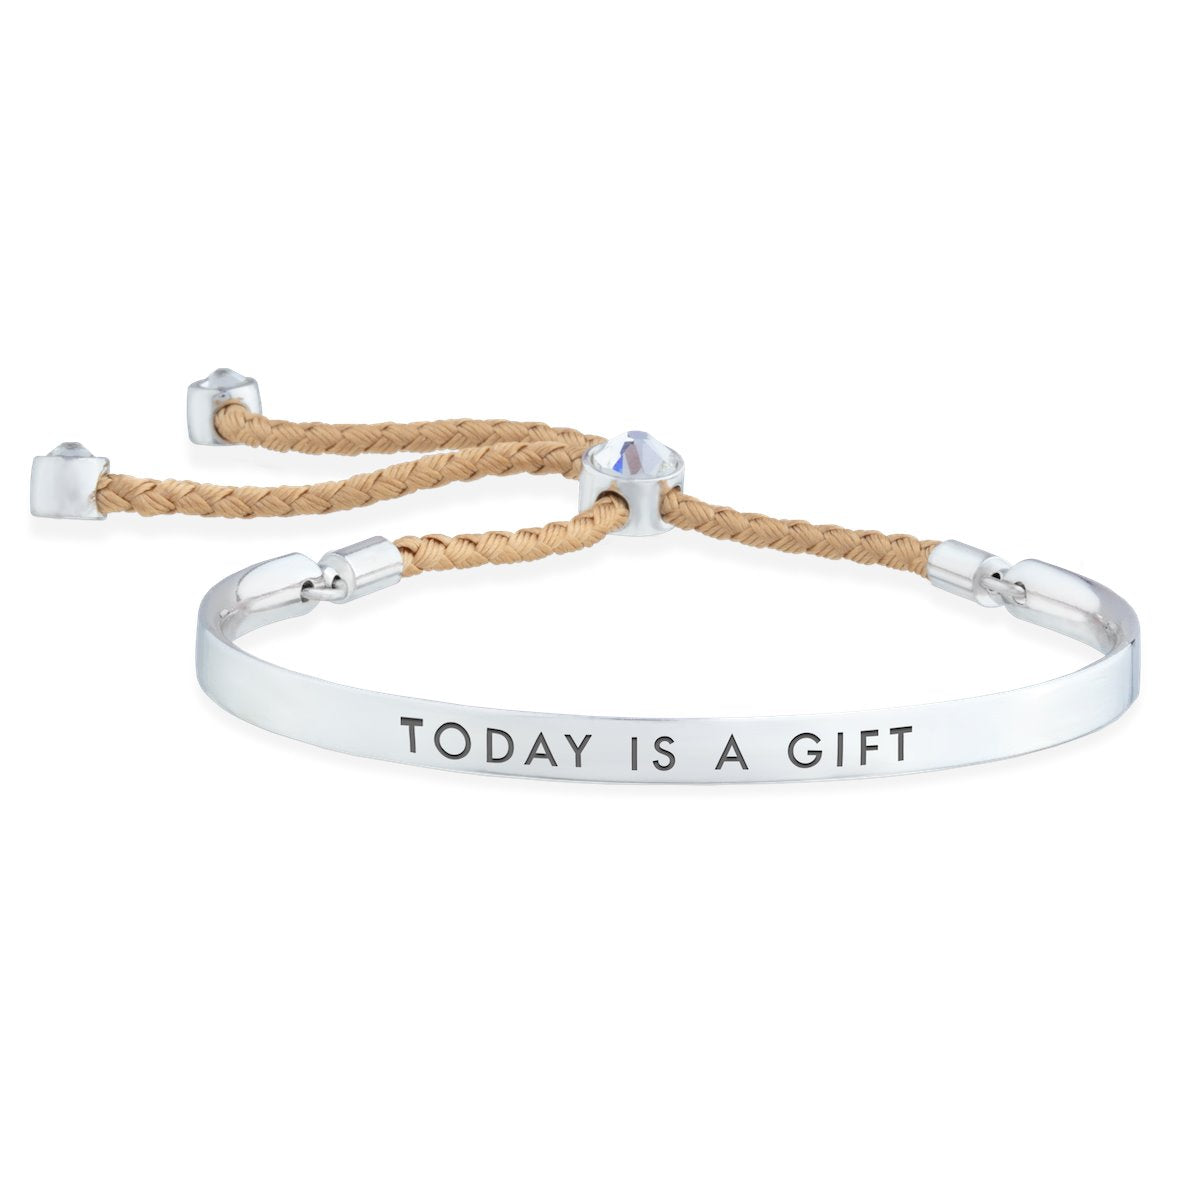 Today is a Gift – Words of Empowerment Bracelet